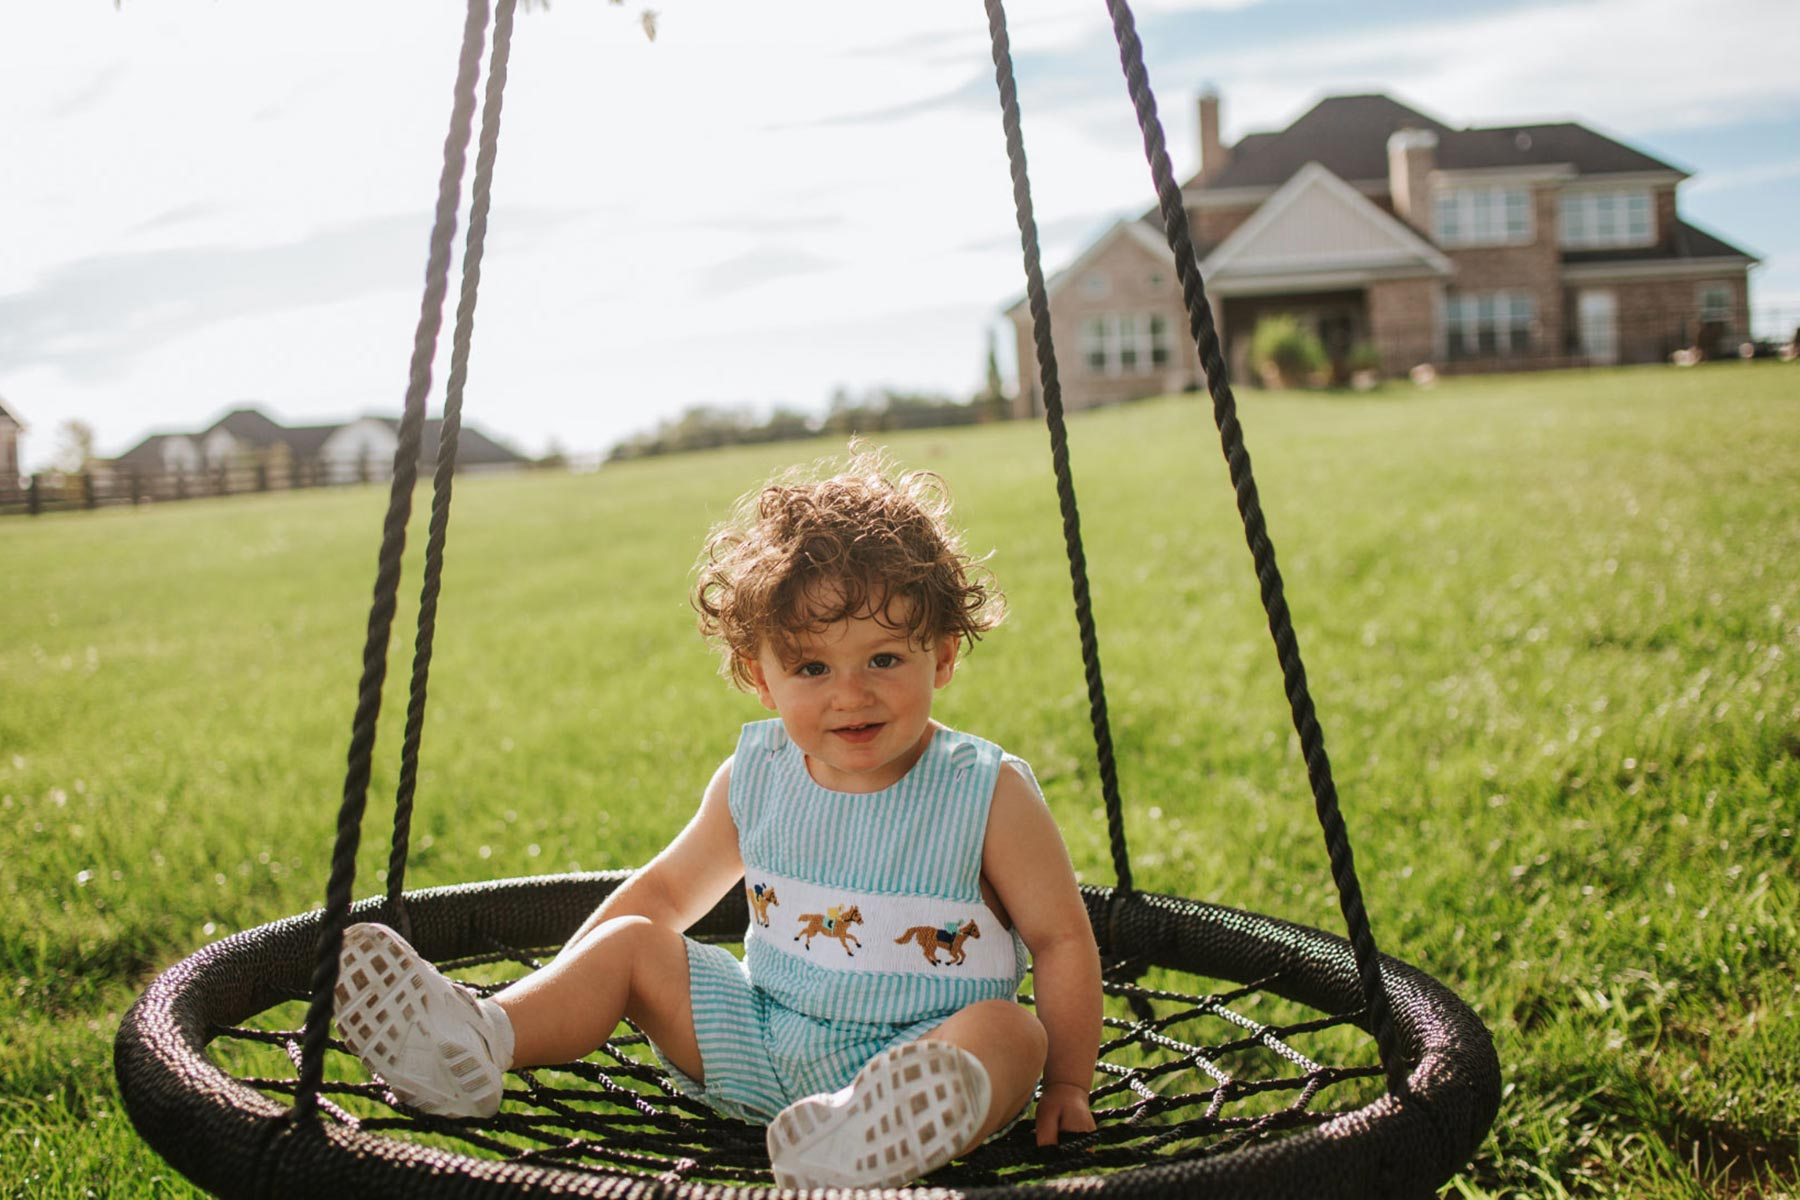 Charlie, a toddler-age boy with curly brown hair dressed in a green striped onesie, sits on a netted swing with a large home and yard in the background.